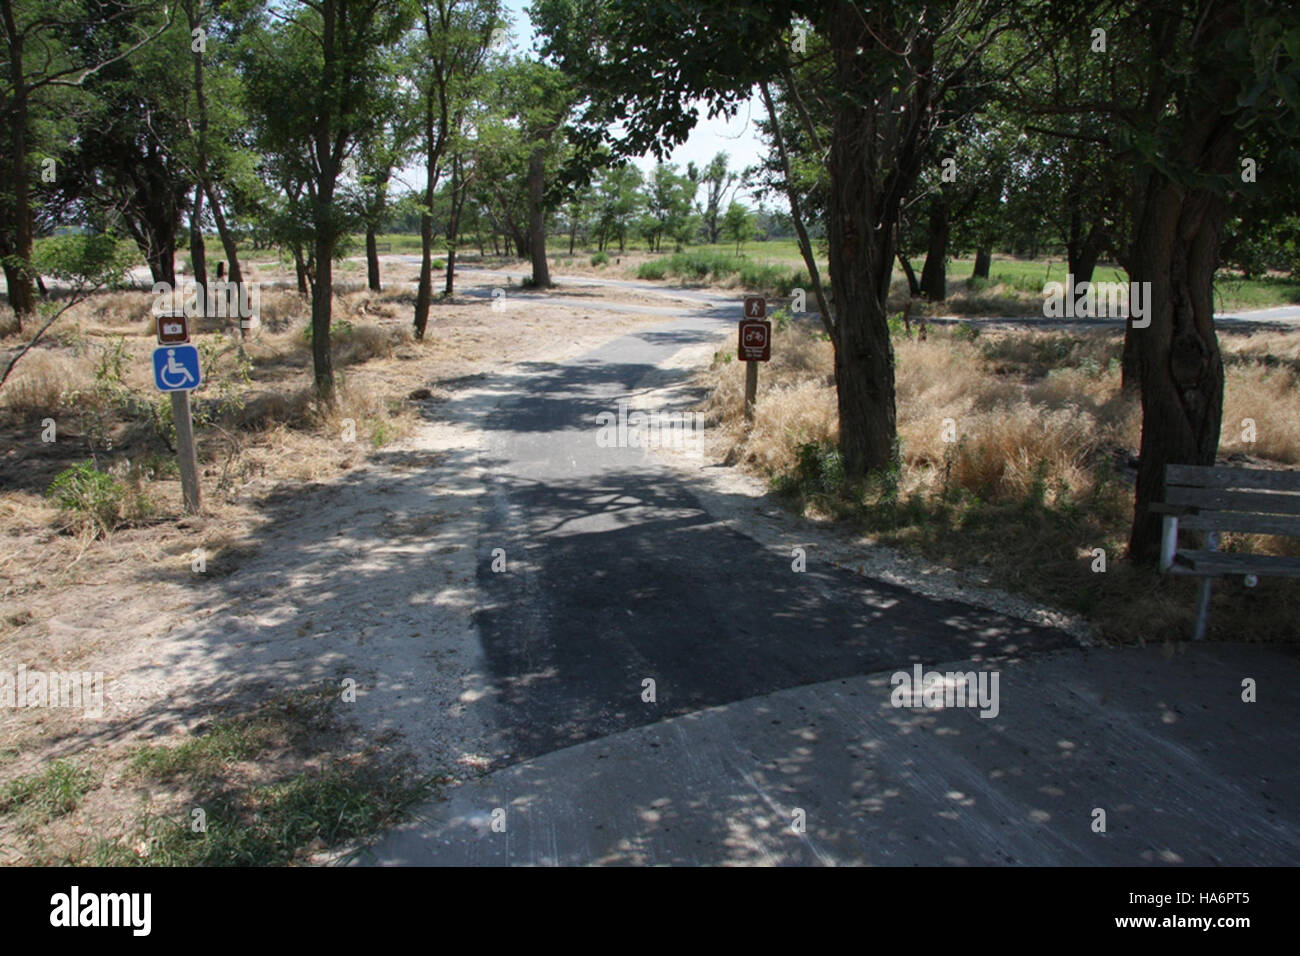 fws-recovery-act-projects 5765273172 05-05-11 Migrants Mile Asphalt Completed Entrance 7-1-2010 001 - Stock Image